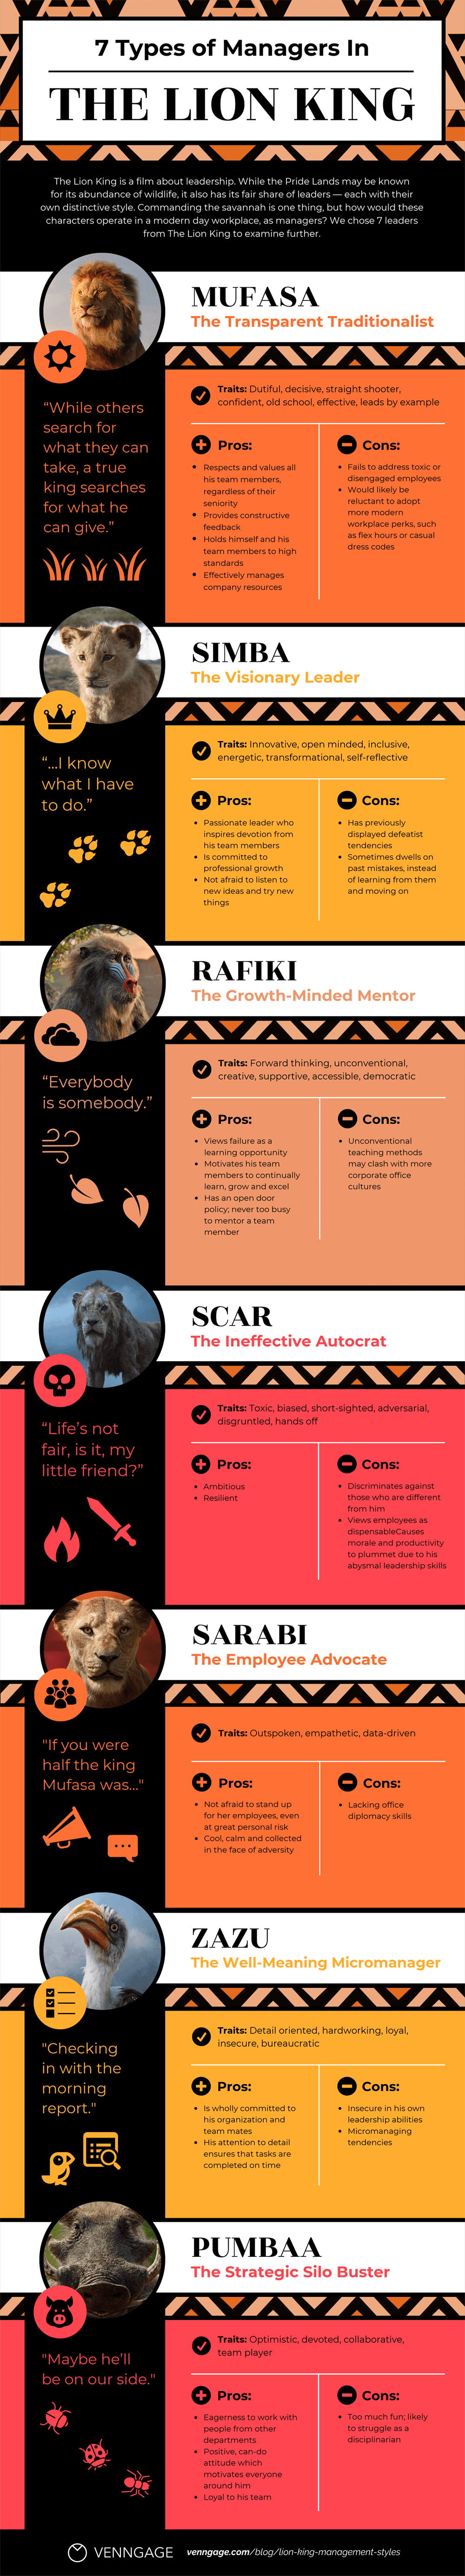 7 Types of Managers in The Lion King Infographic Template